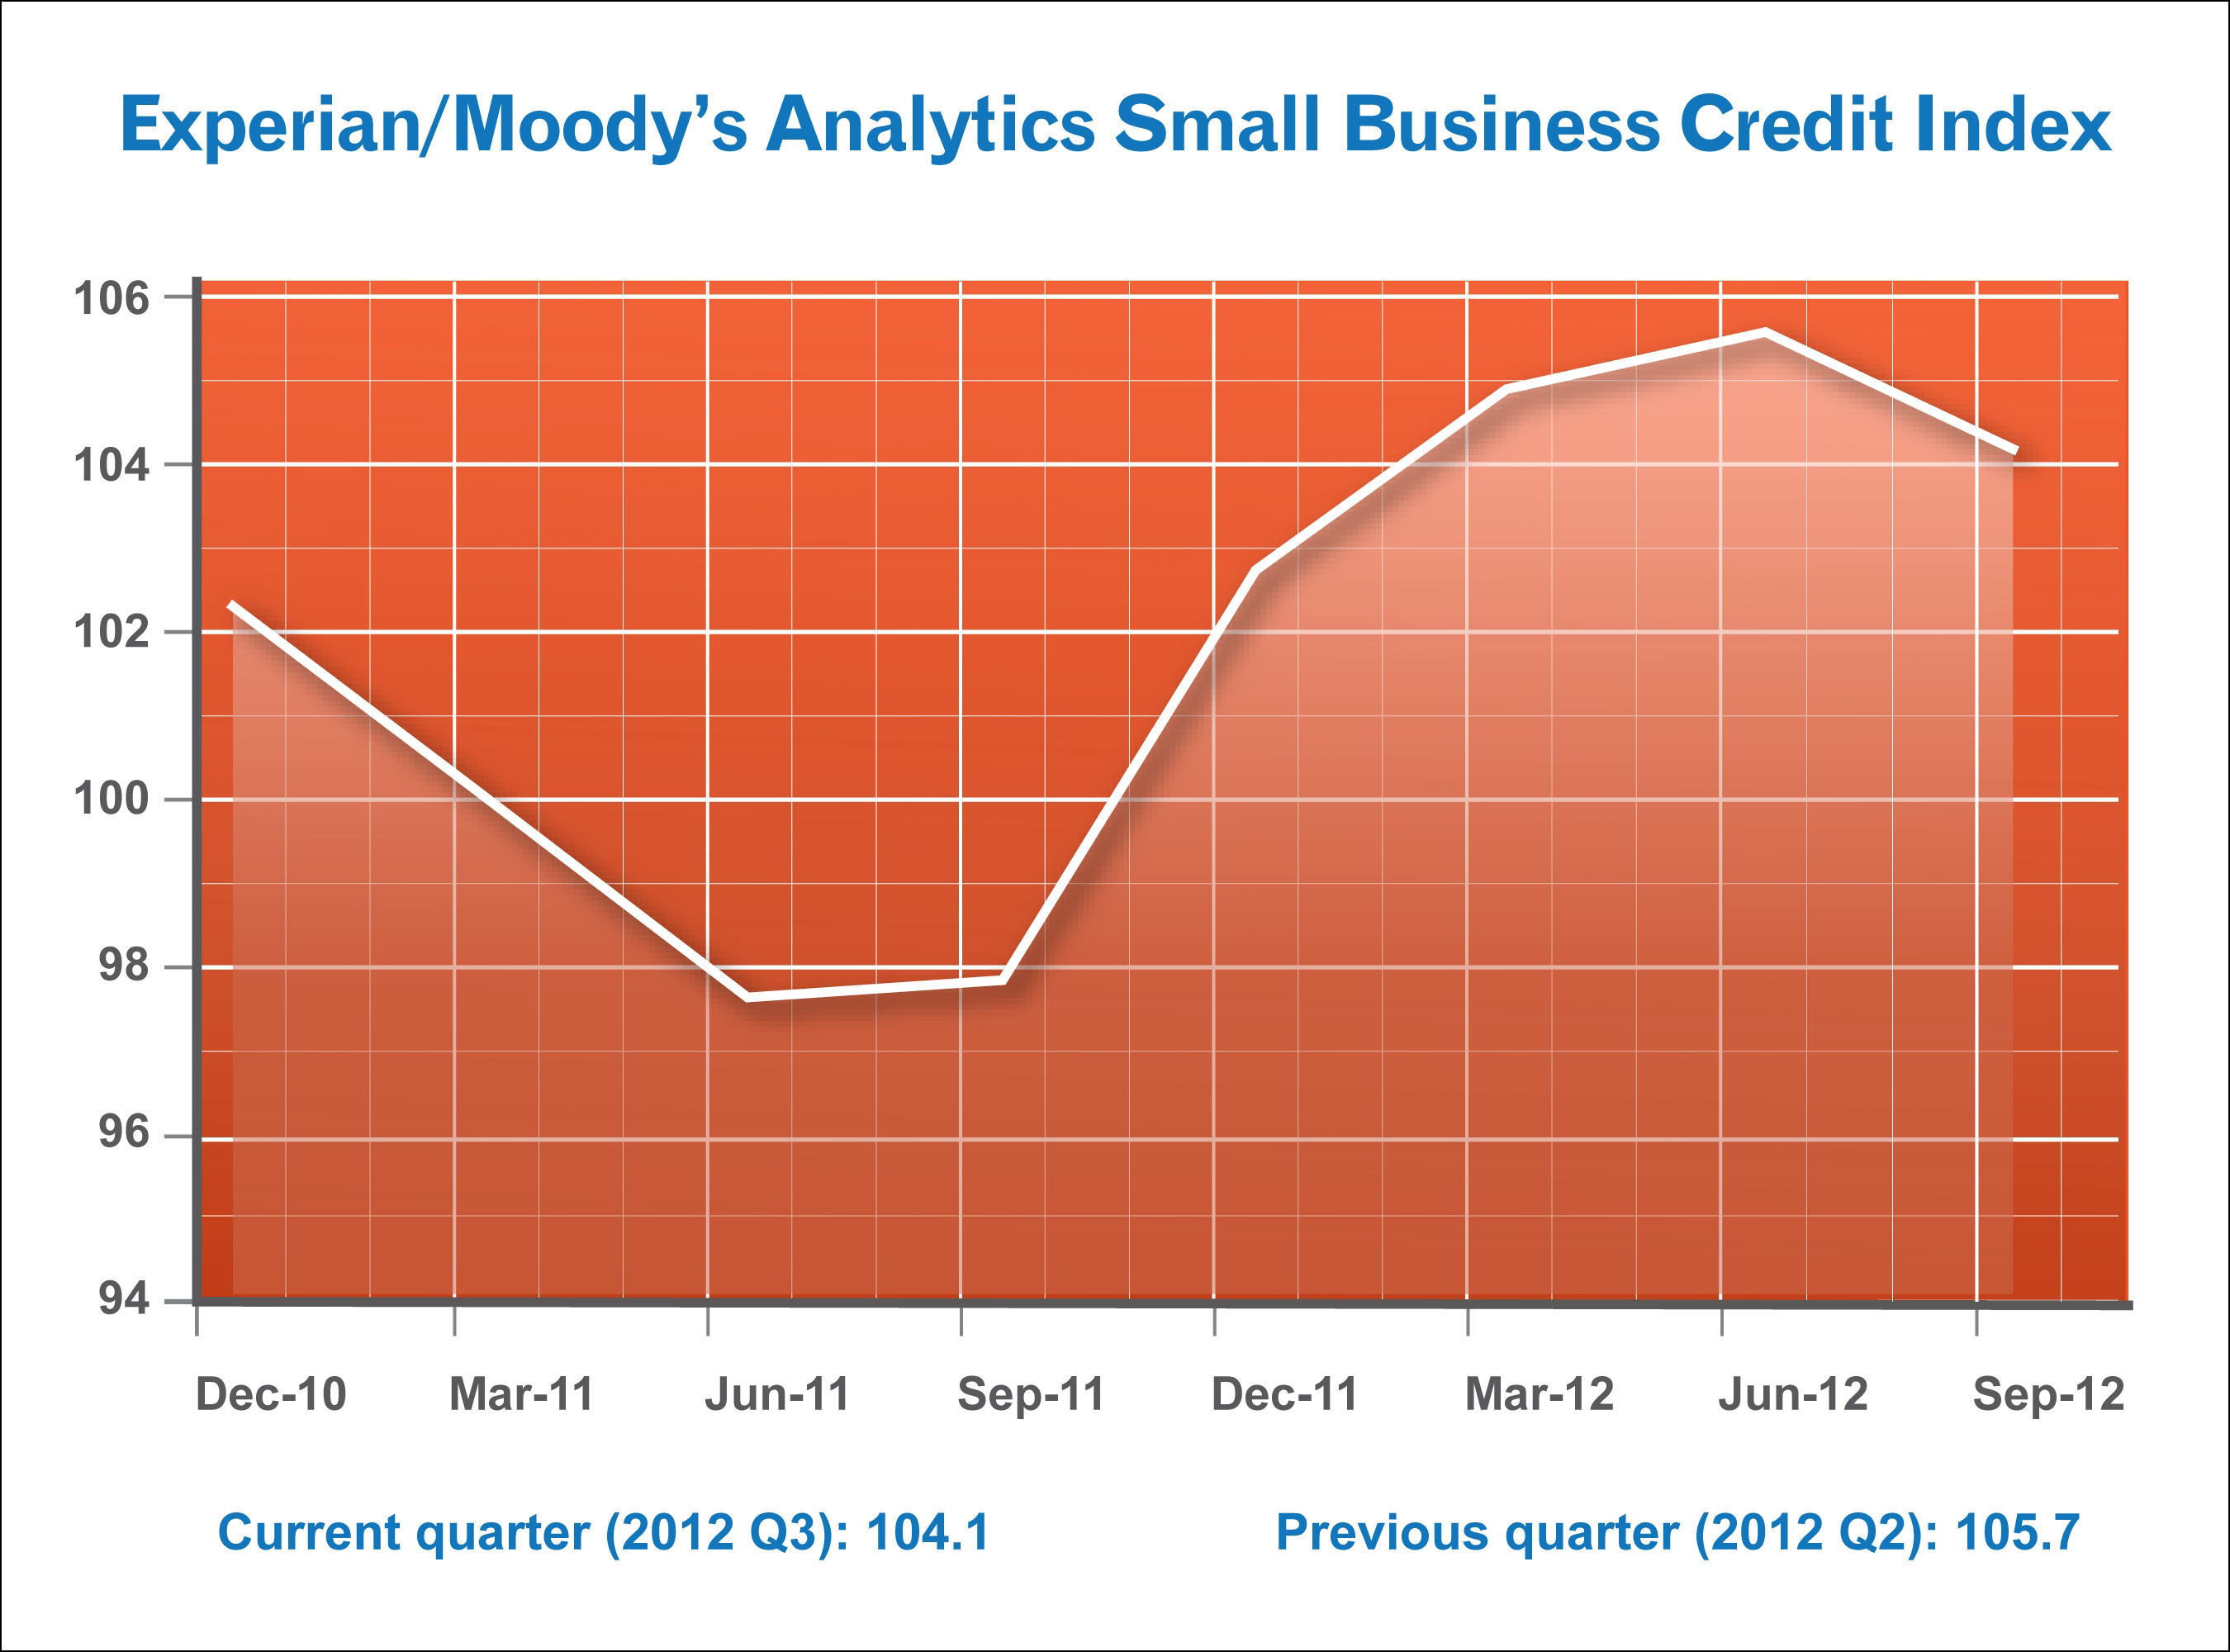 Experian/Moody's Analytics Small Business Credit Index shows small businesses faced significant